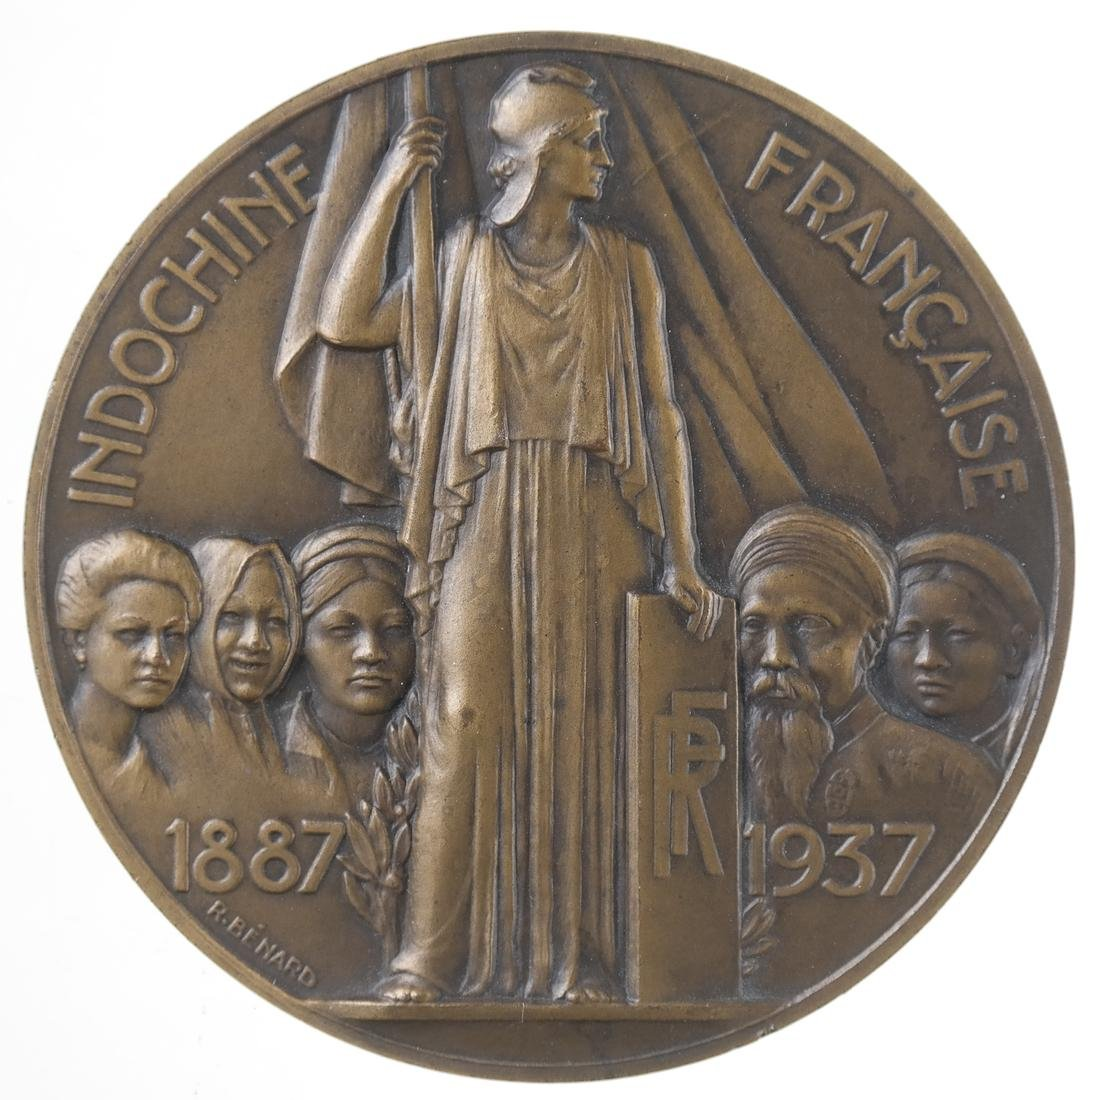 FRANCE. INDOCHINA UNION 50TH ANNIVERSARY MEDAL, 1937.